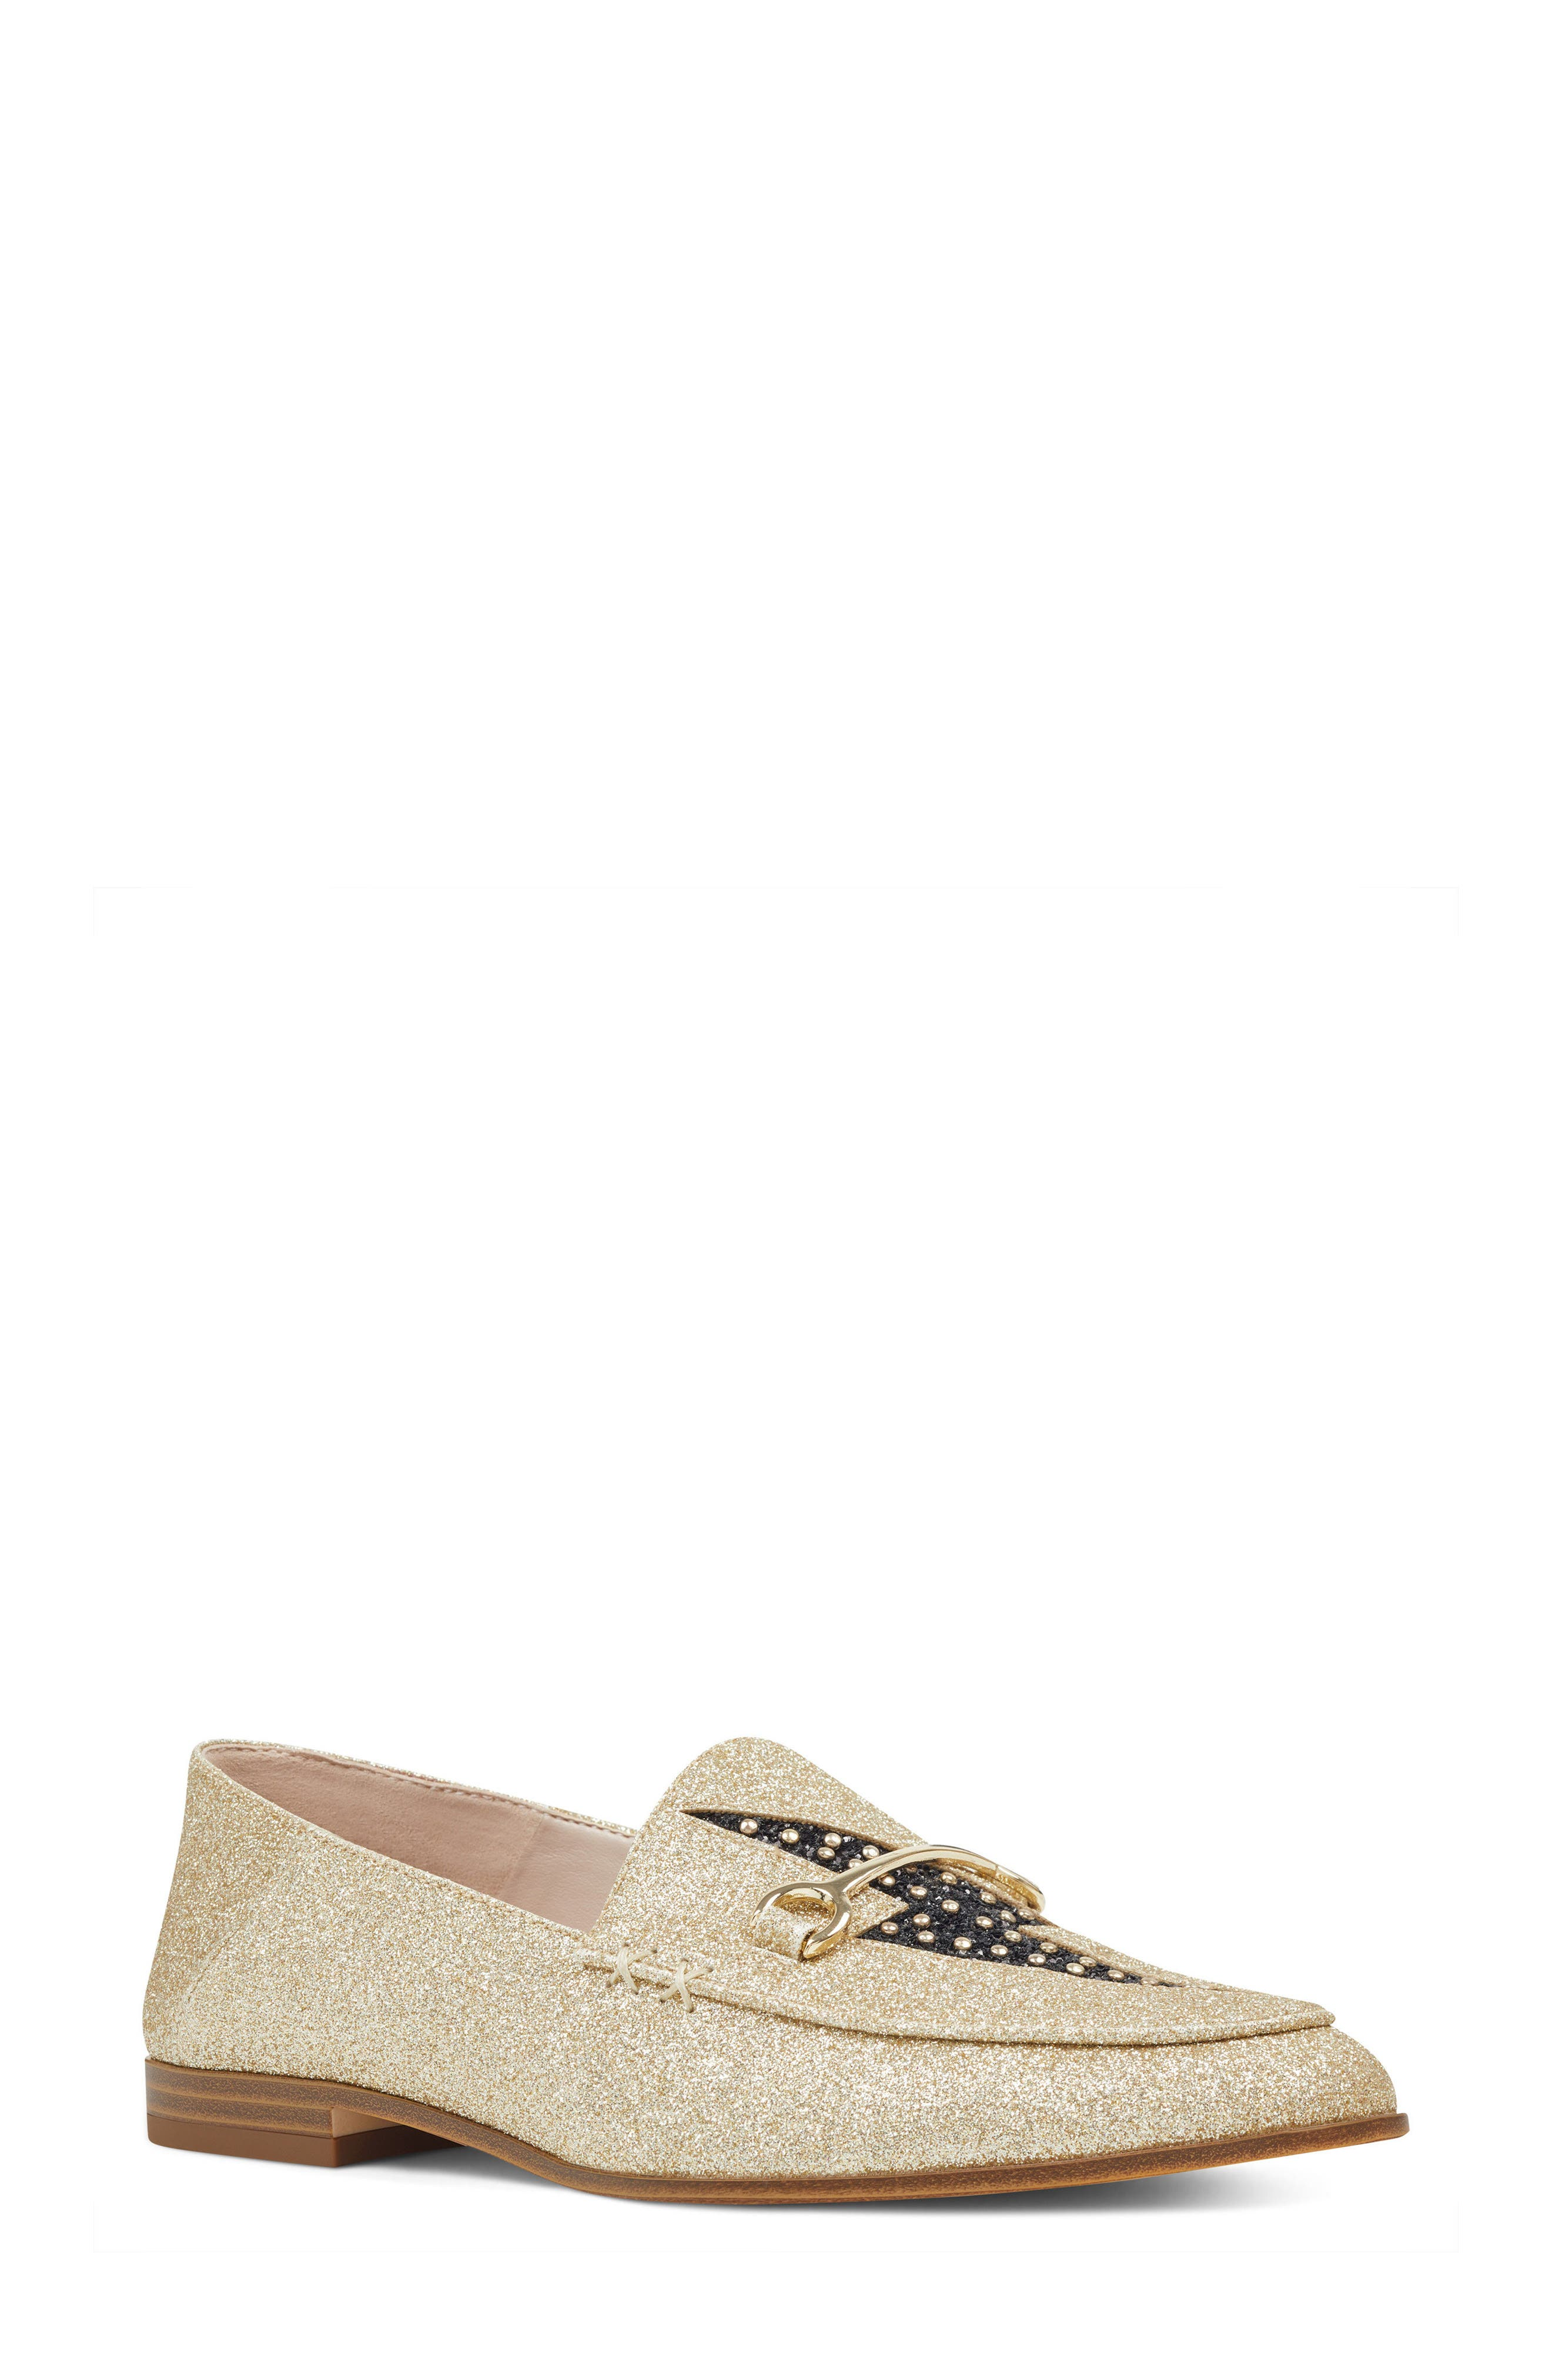 Wildgirls Embellished Loafer,                         Main,                         color, Light Gold/ Black Fabric